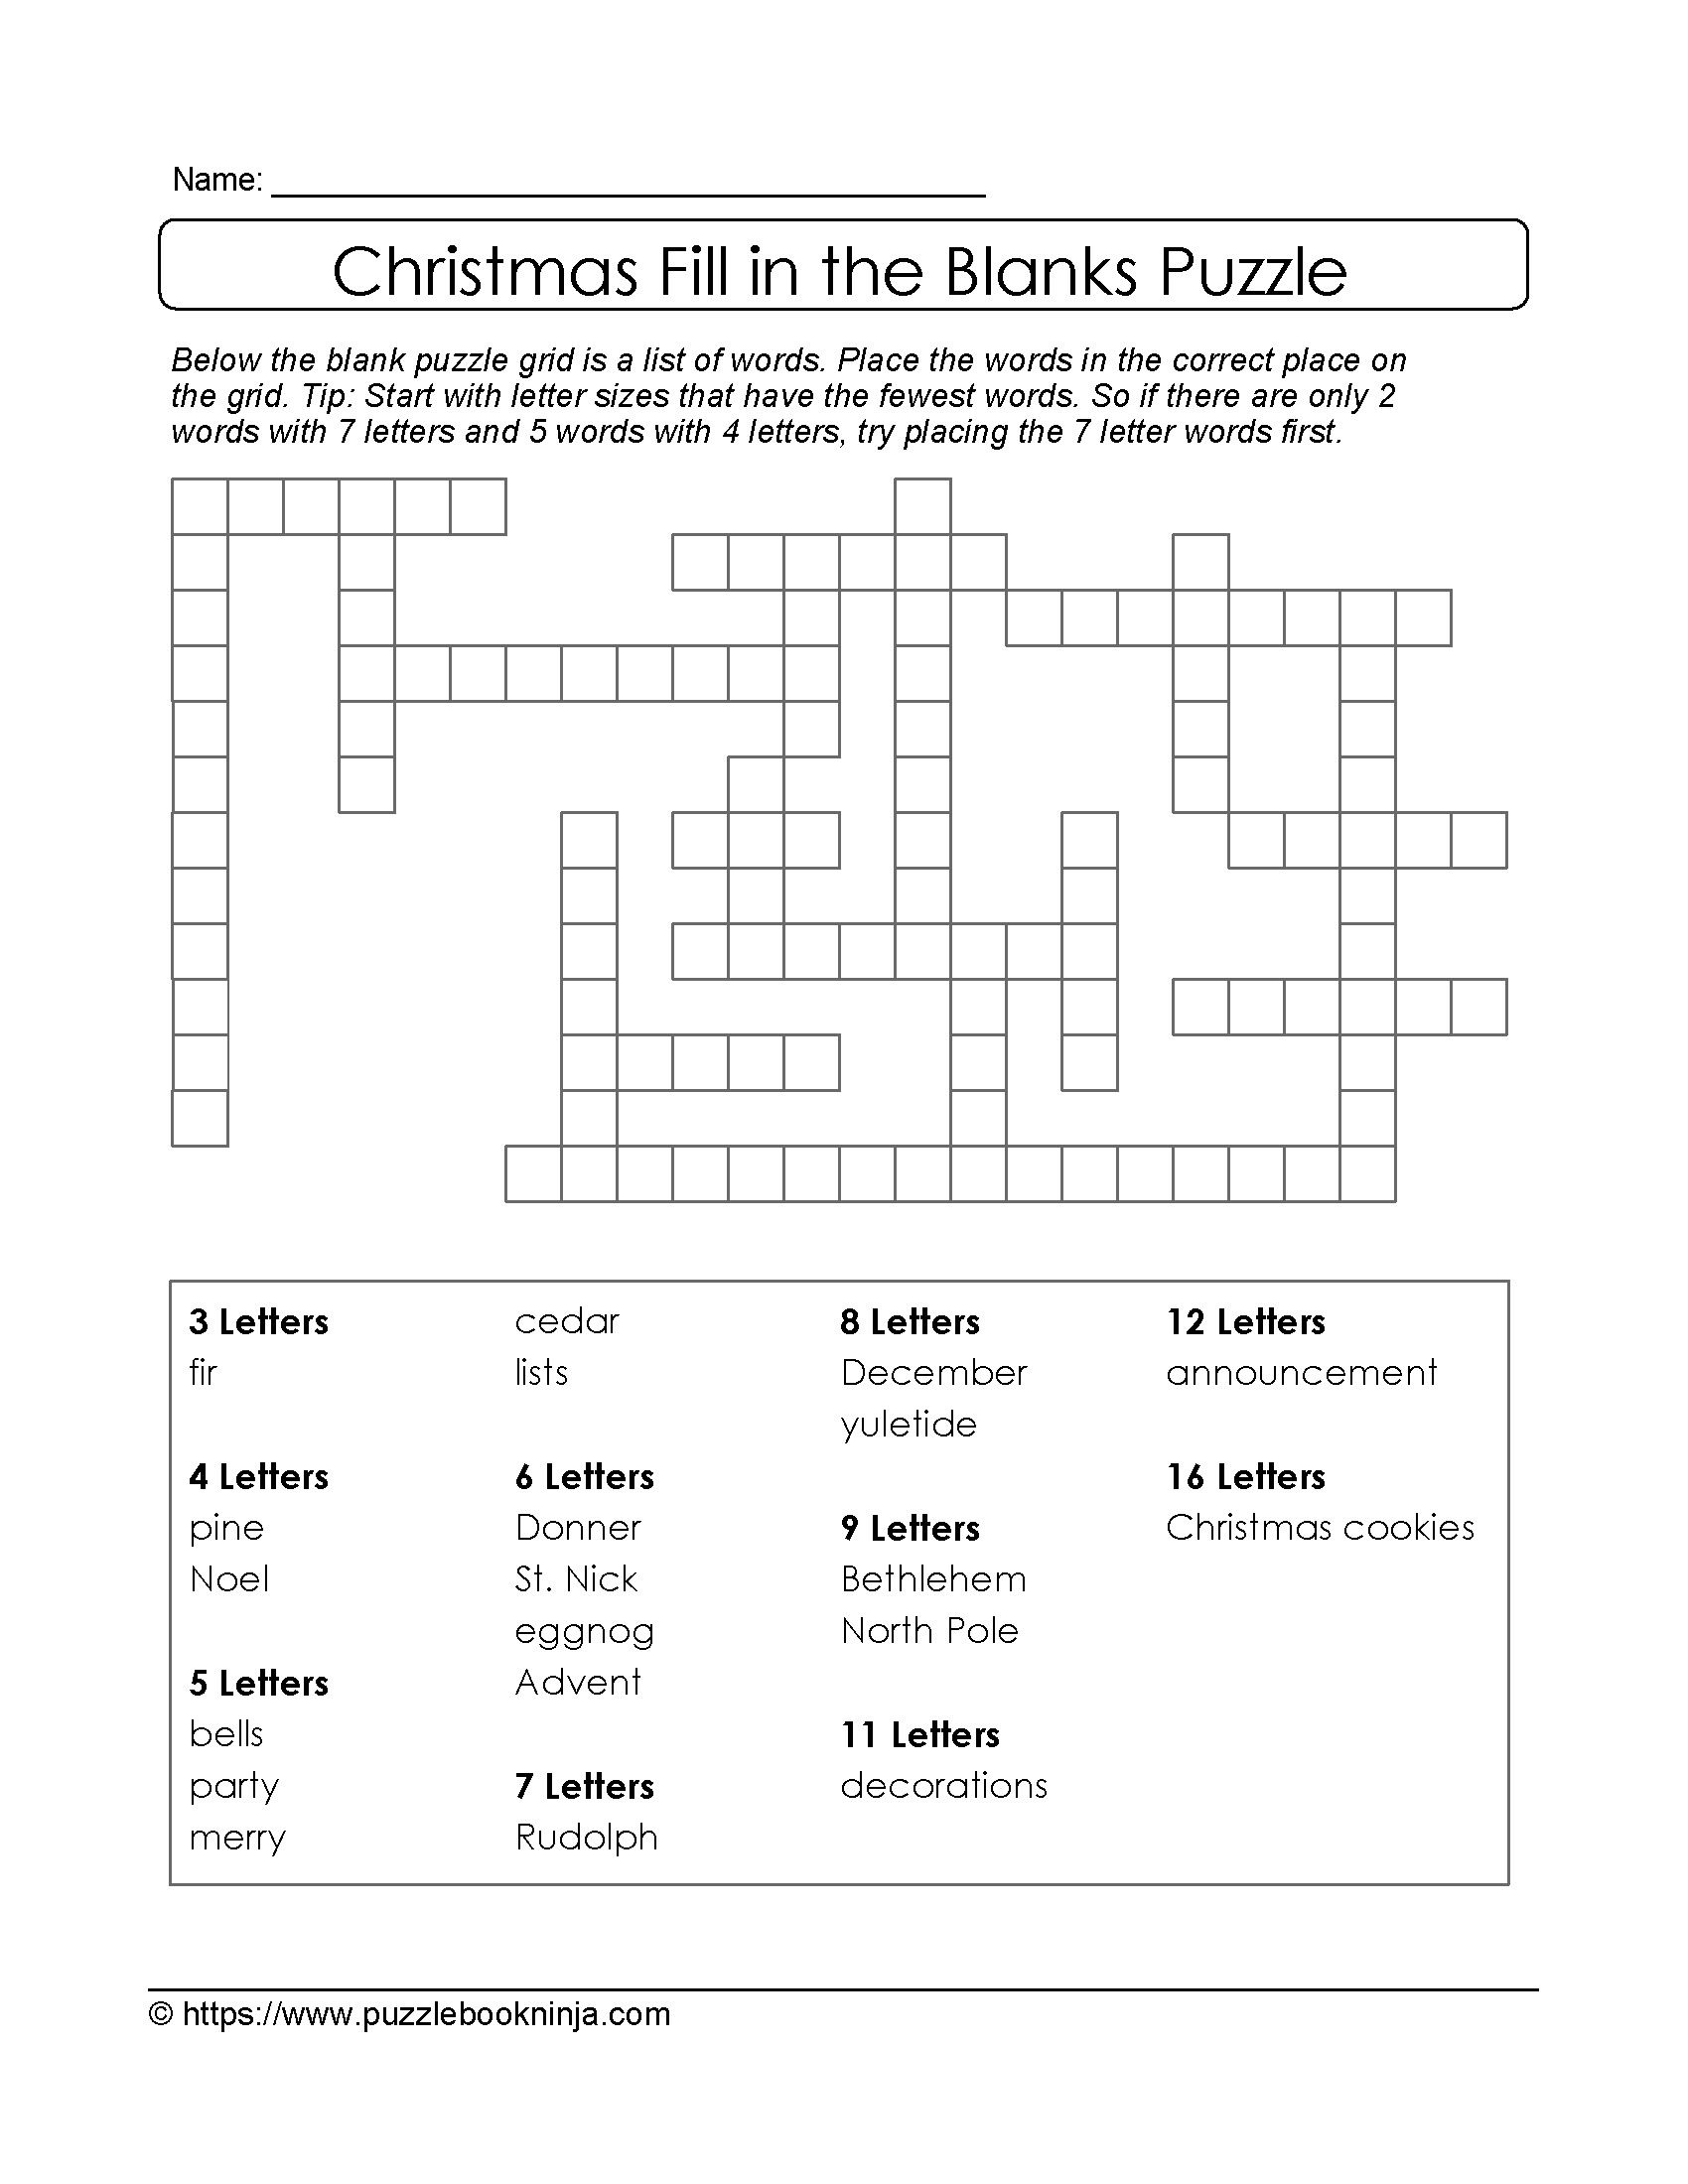 Christmas Printable Puzzle. Free Fill In The Blanks. | Christmas - Printable Conflict Resolution Crossword Puzzle